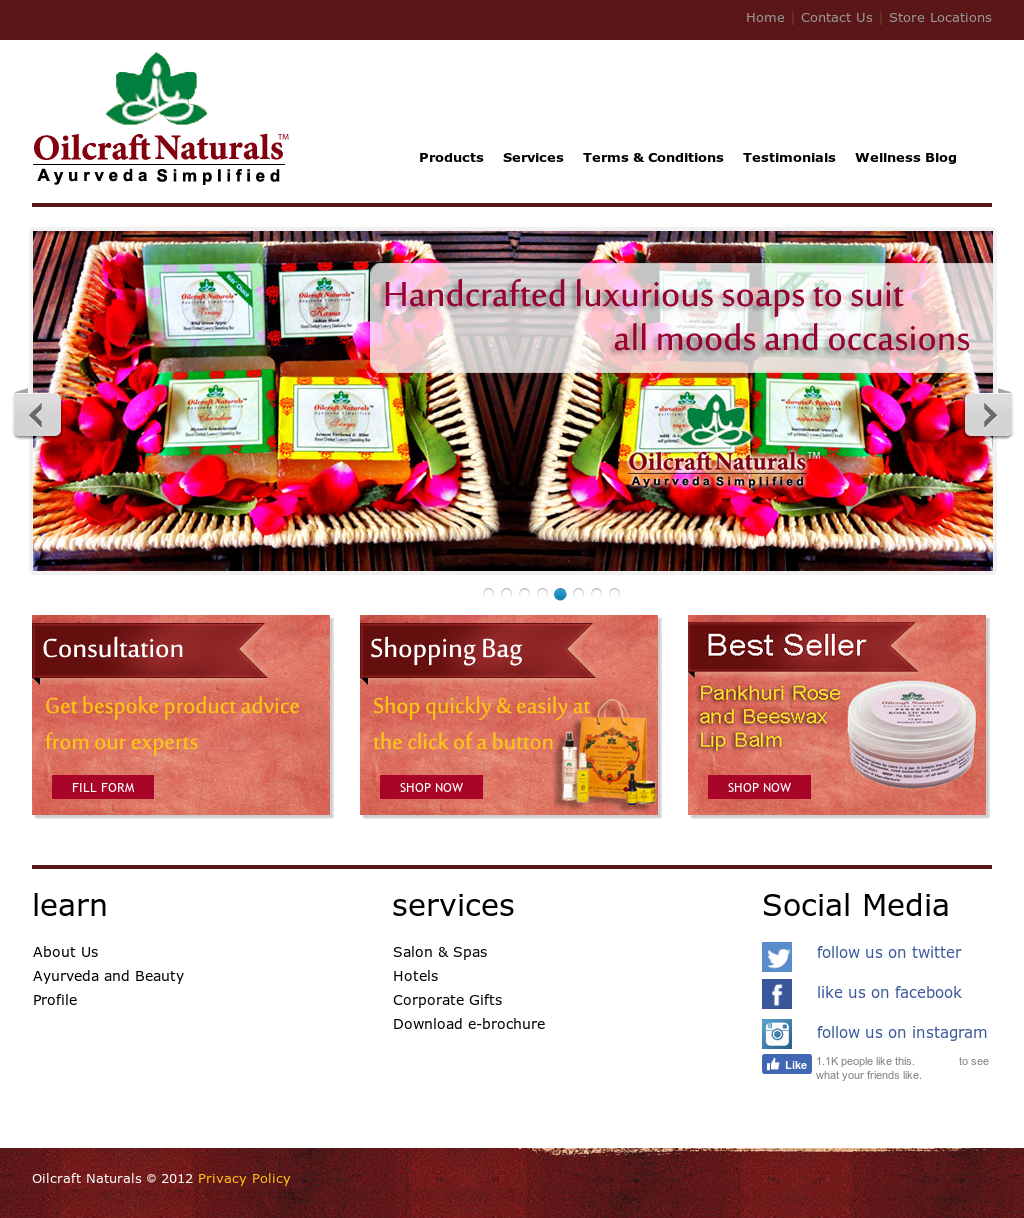 Oilcraft Naturals Competitors, Revenue and Employees - Owler